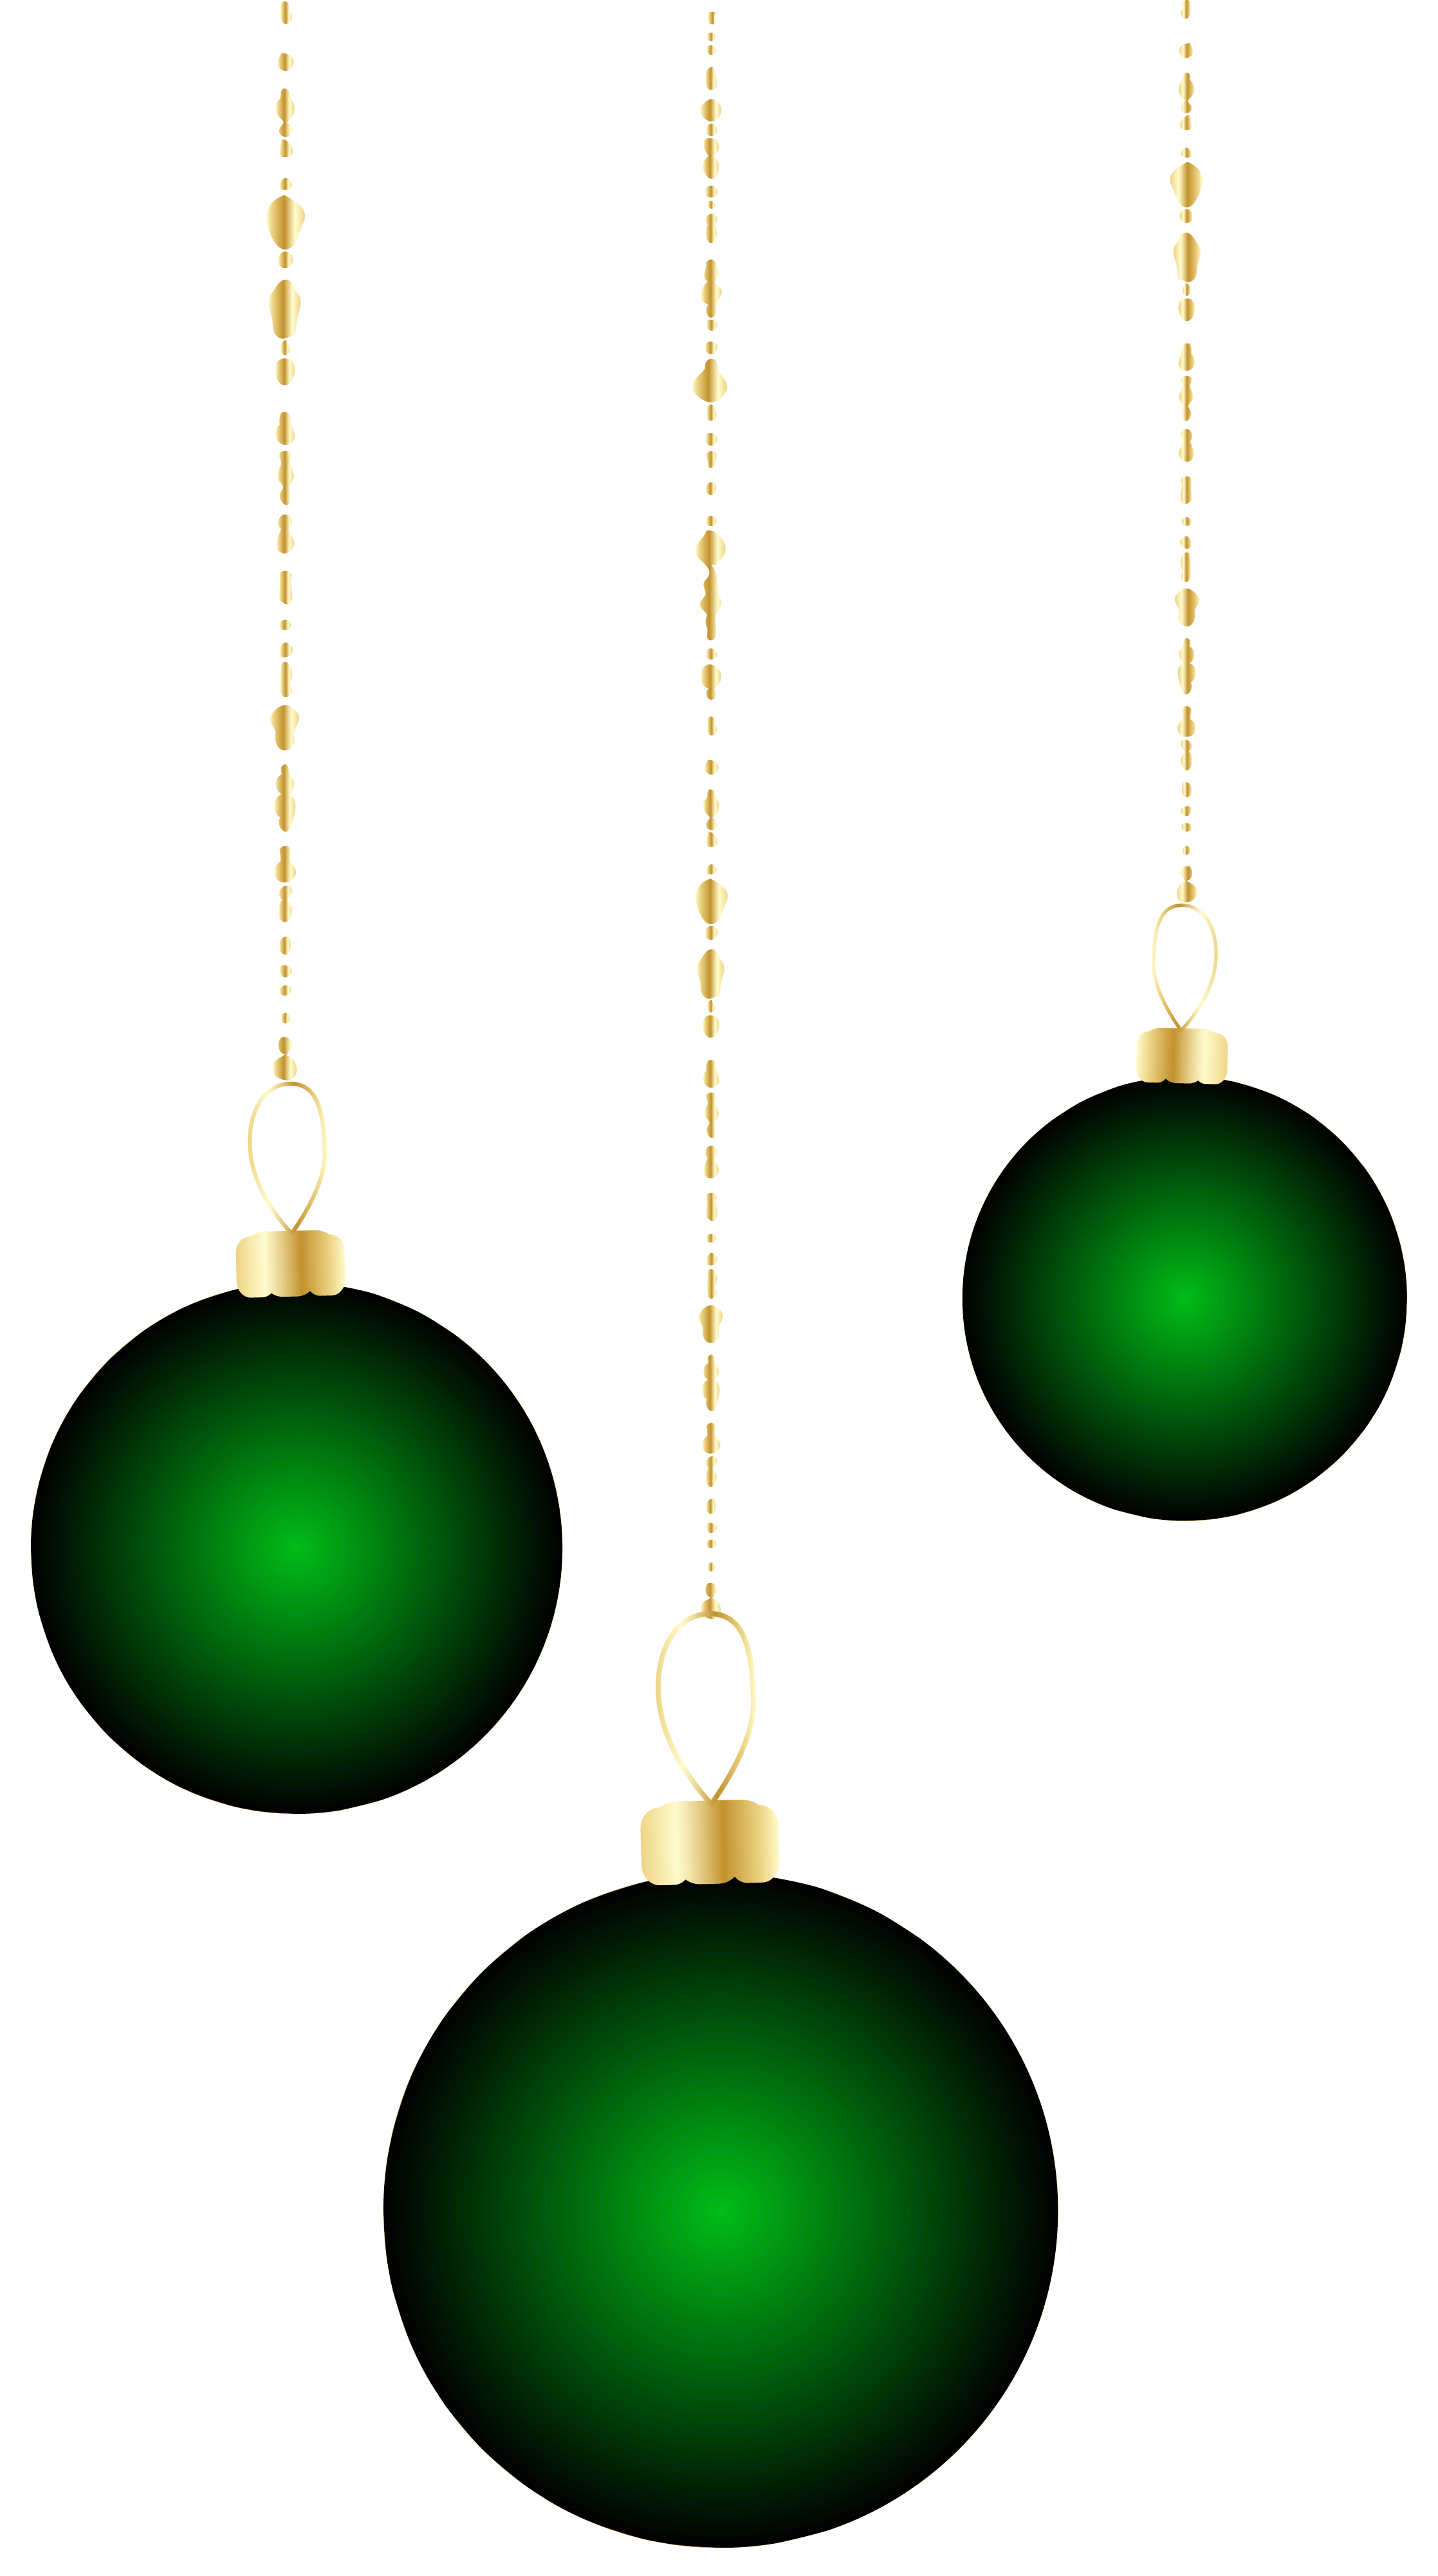 Green christmas ornaments clipart graphic library stock Transparent Christmas Green Ornaments PNG Clipart | Gallery ... graphic library stock